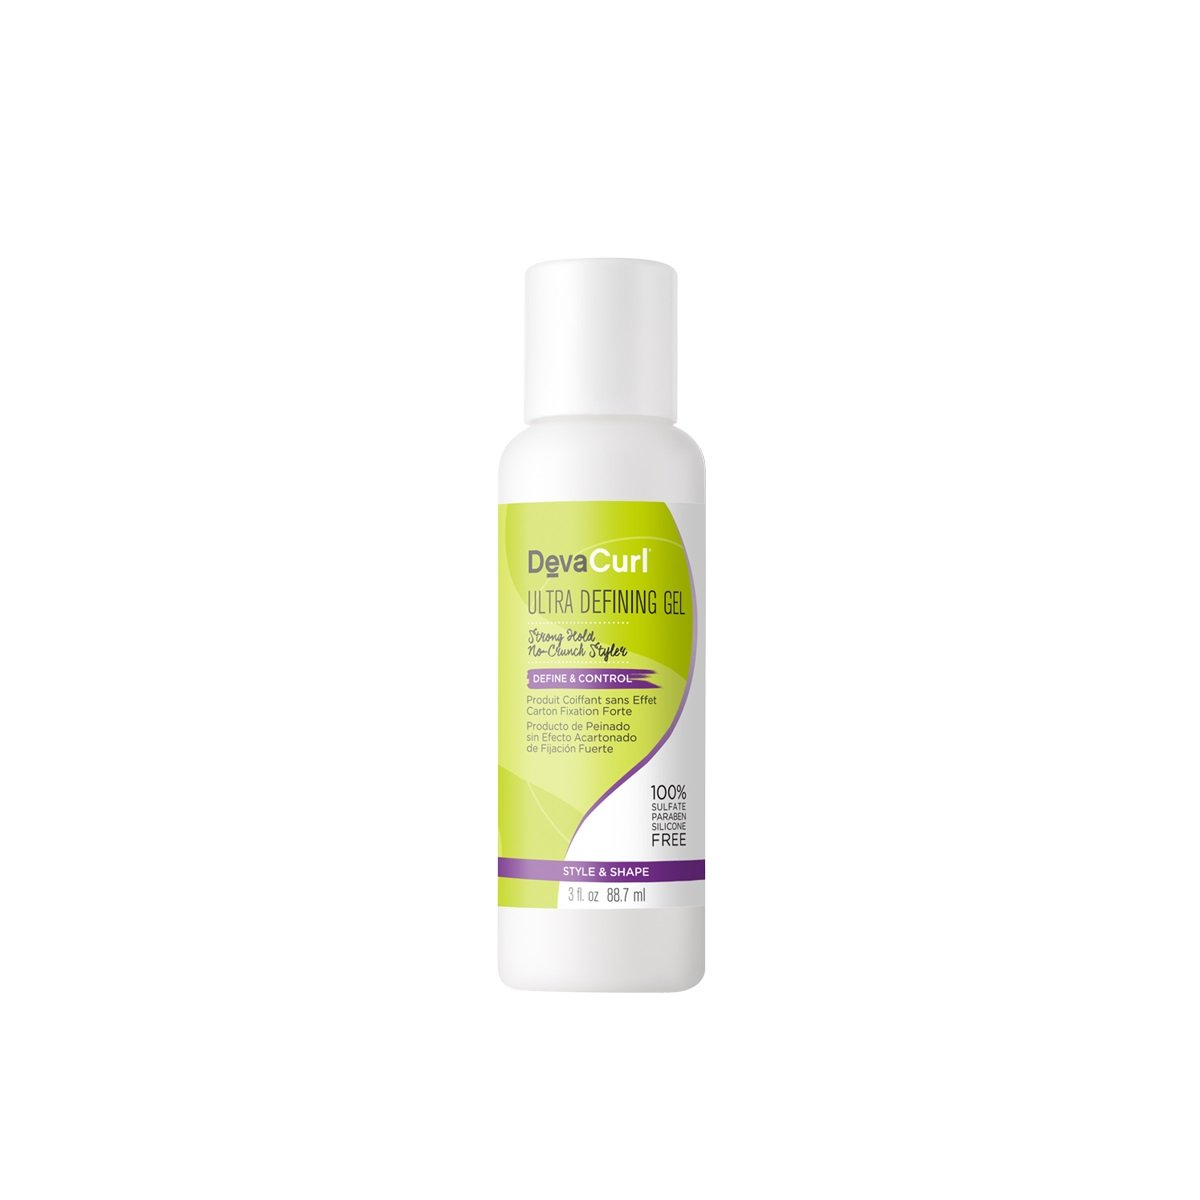 DevaCurl Ultra Defining Gel, 3 Fluid Ounce